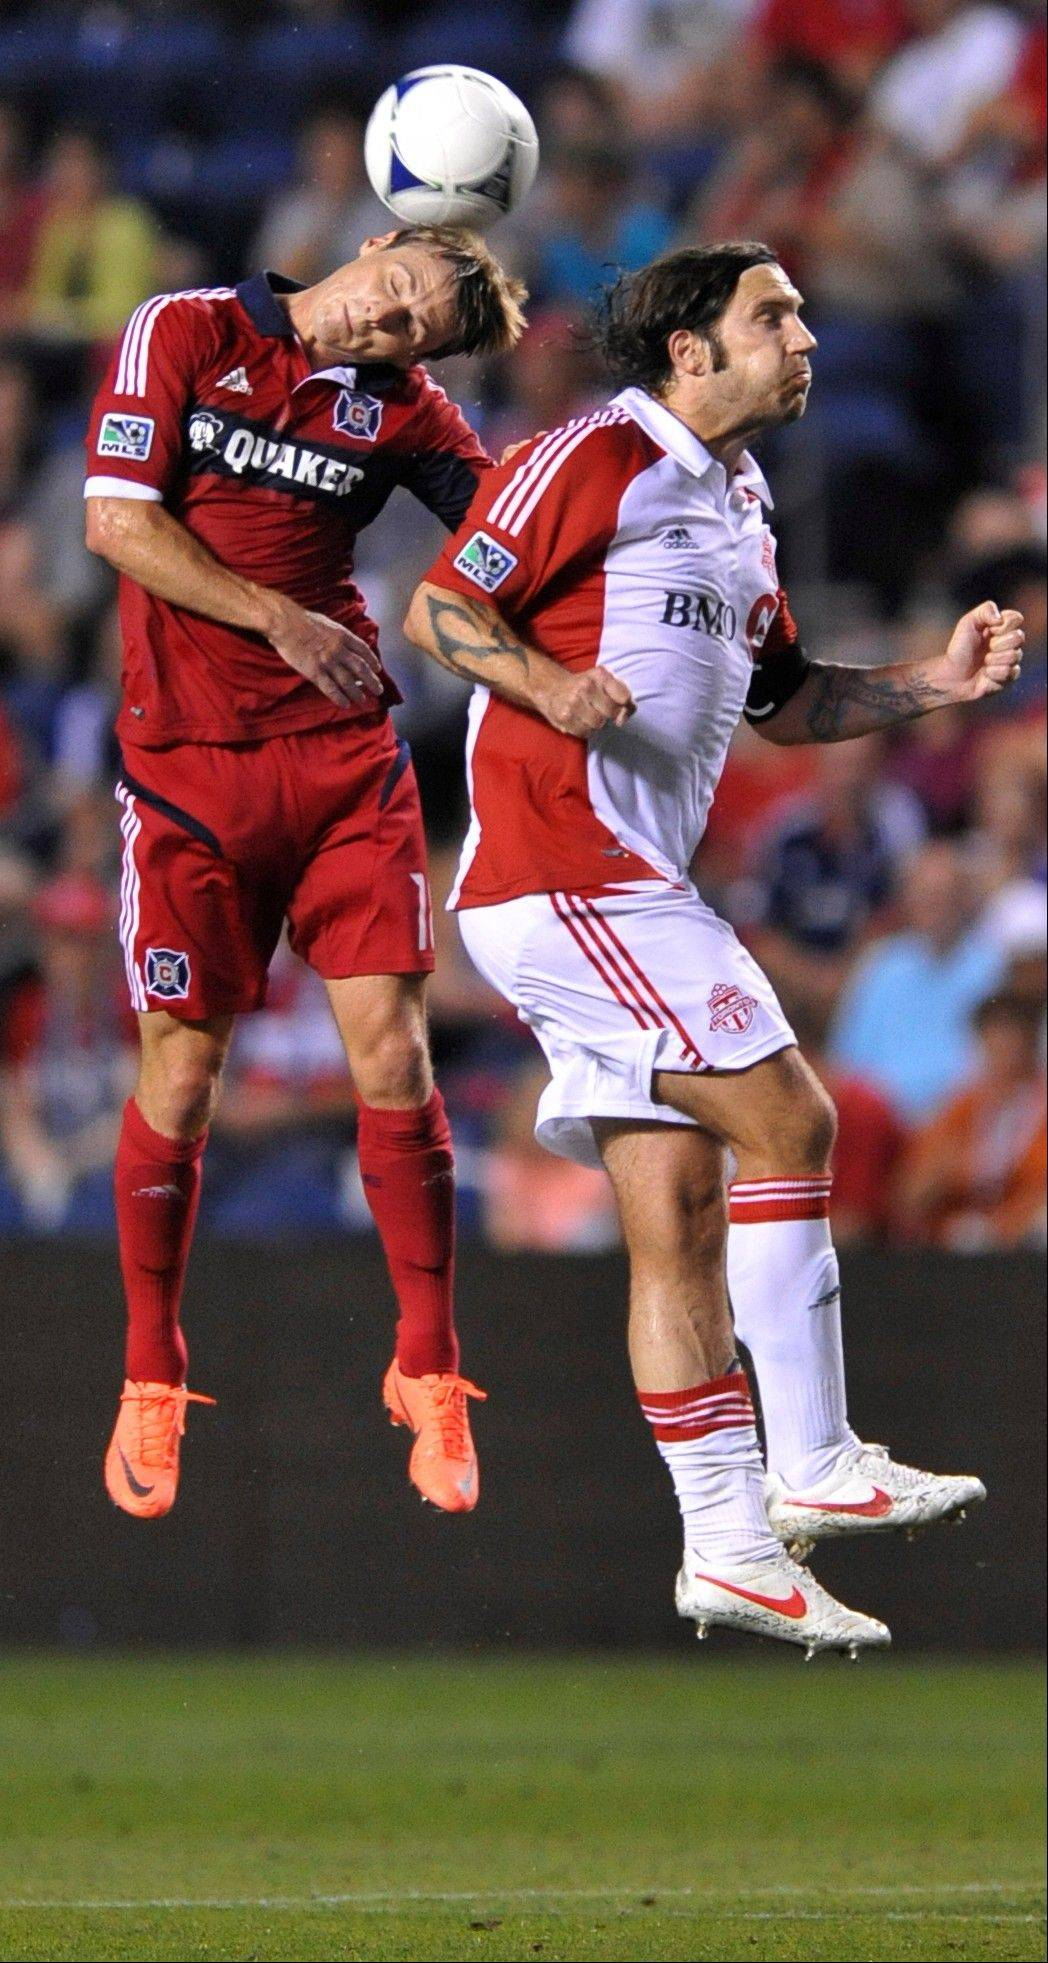 Chicago Fire's Chris Rolfe left, goes up for a header against Toronto FC's Torsten Frings in the first half of an MLS soccer game in Bridgeview, Ill., Saturday, Aug. 4, 2012.